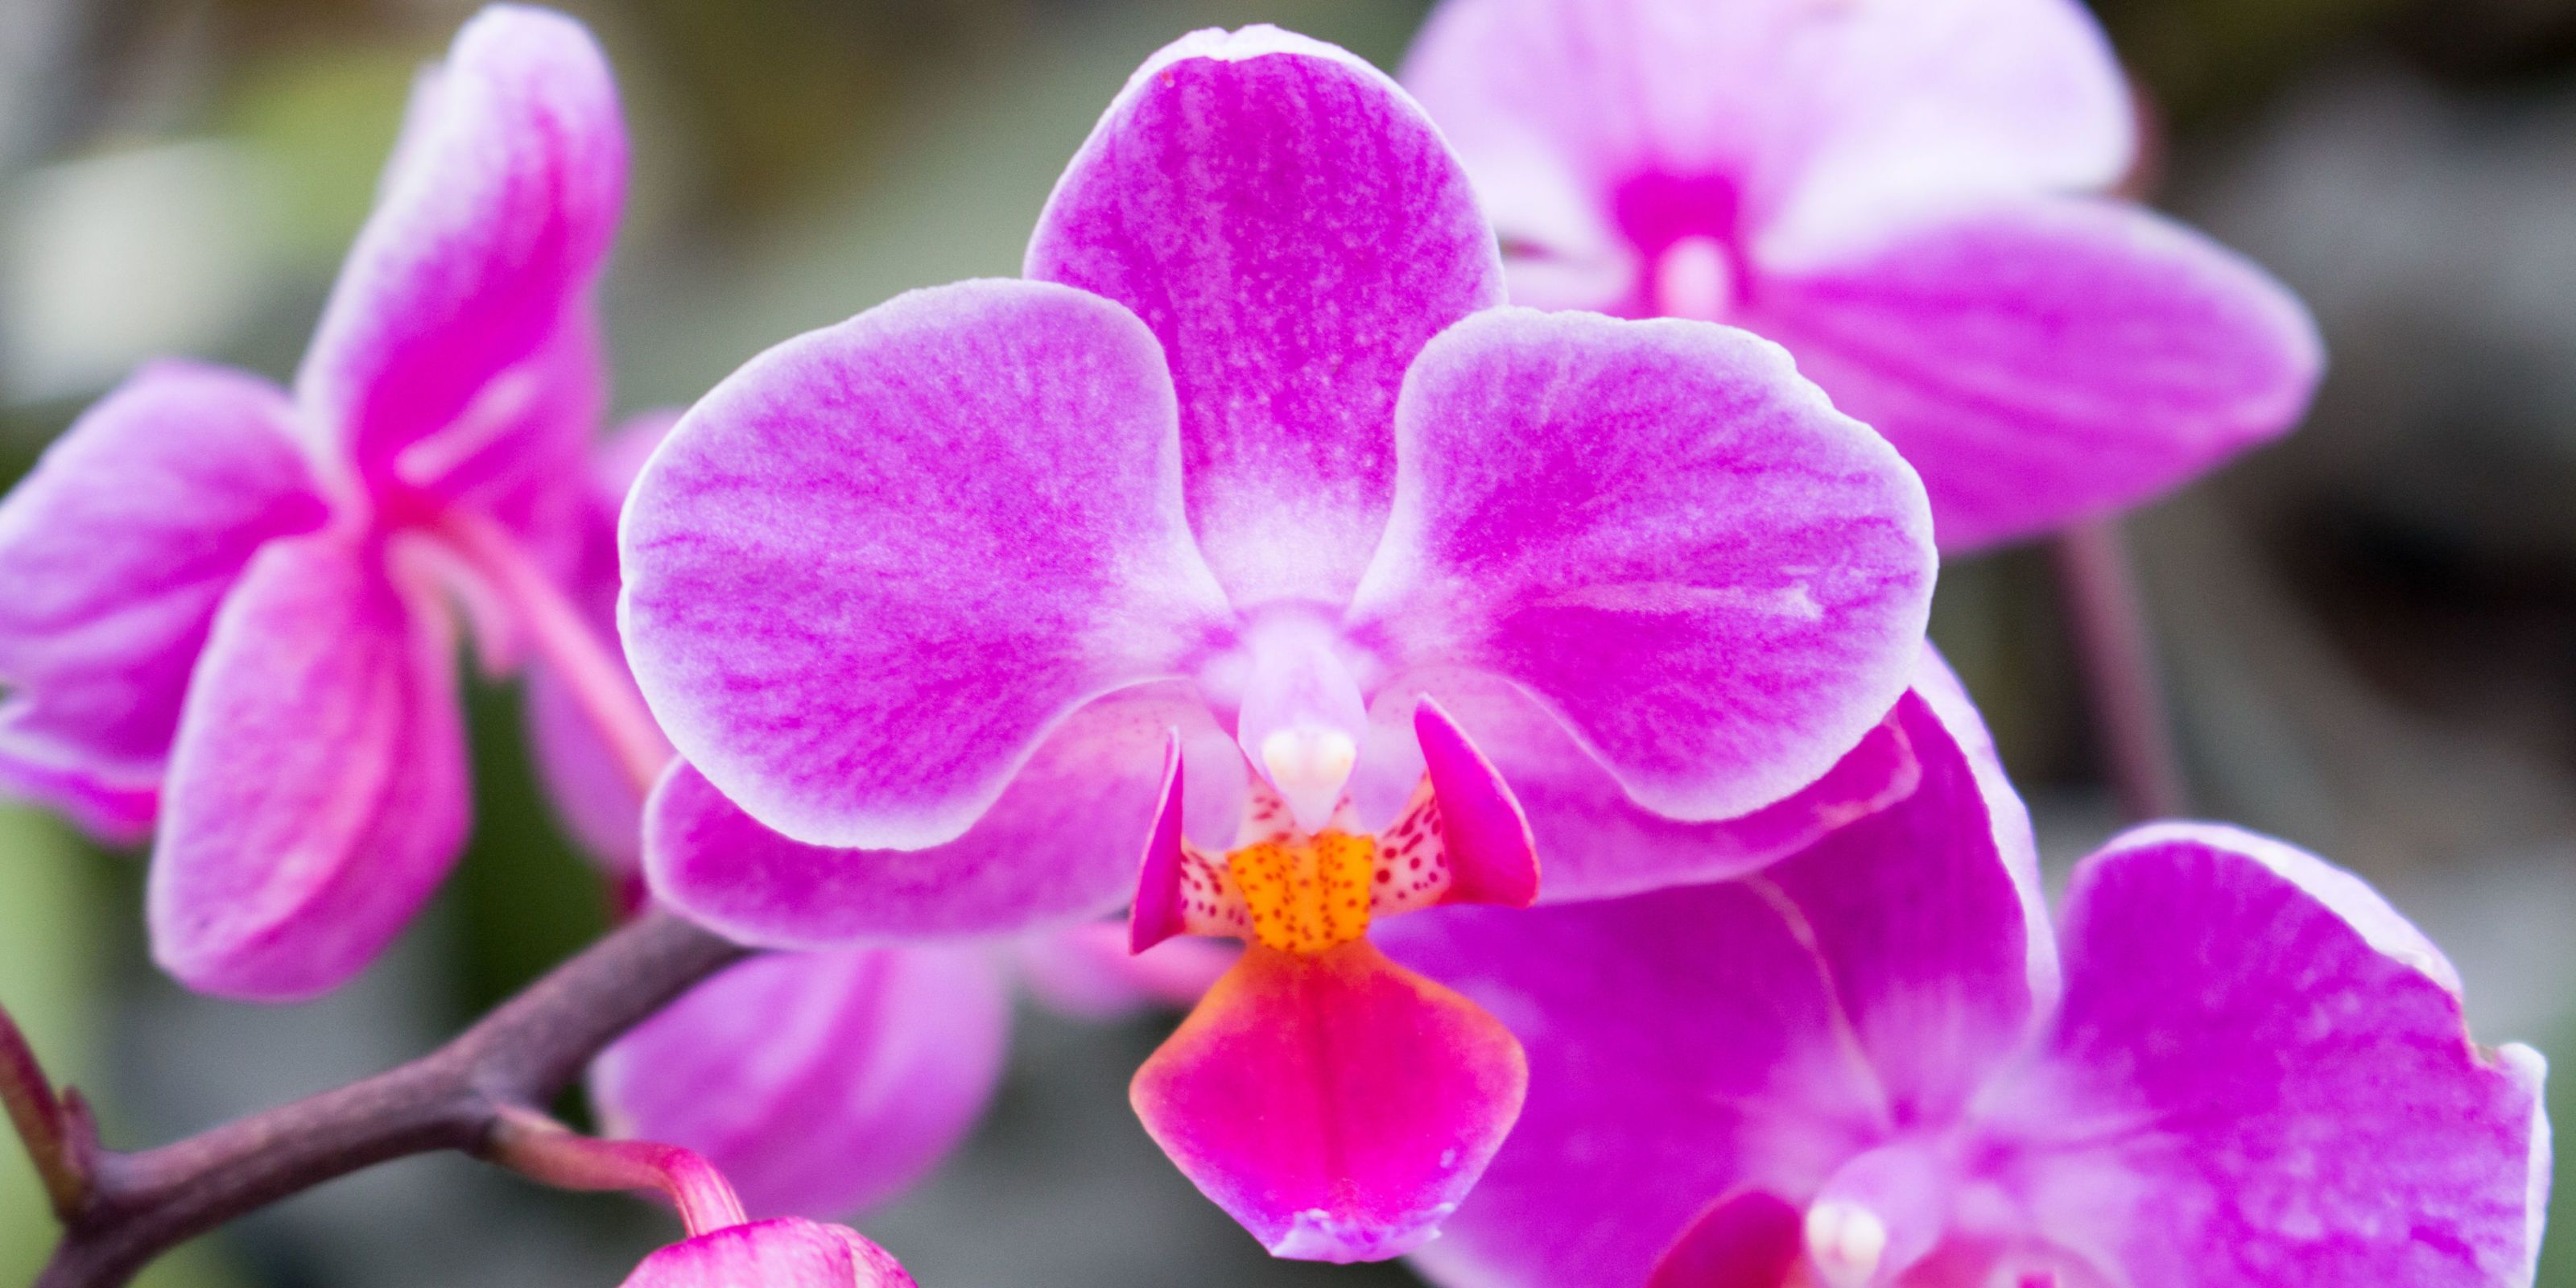 11 Swoon-Worthy Photos from the New York Botanical Garden Orchid Show